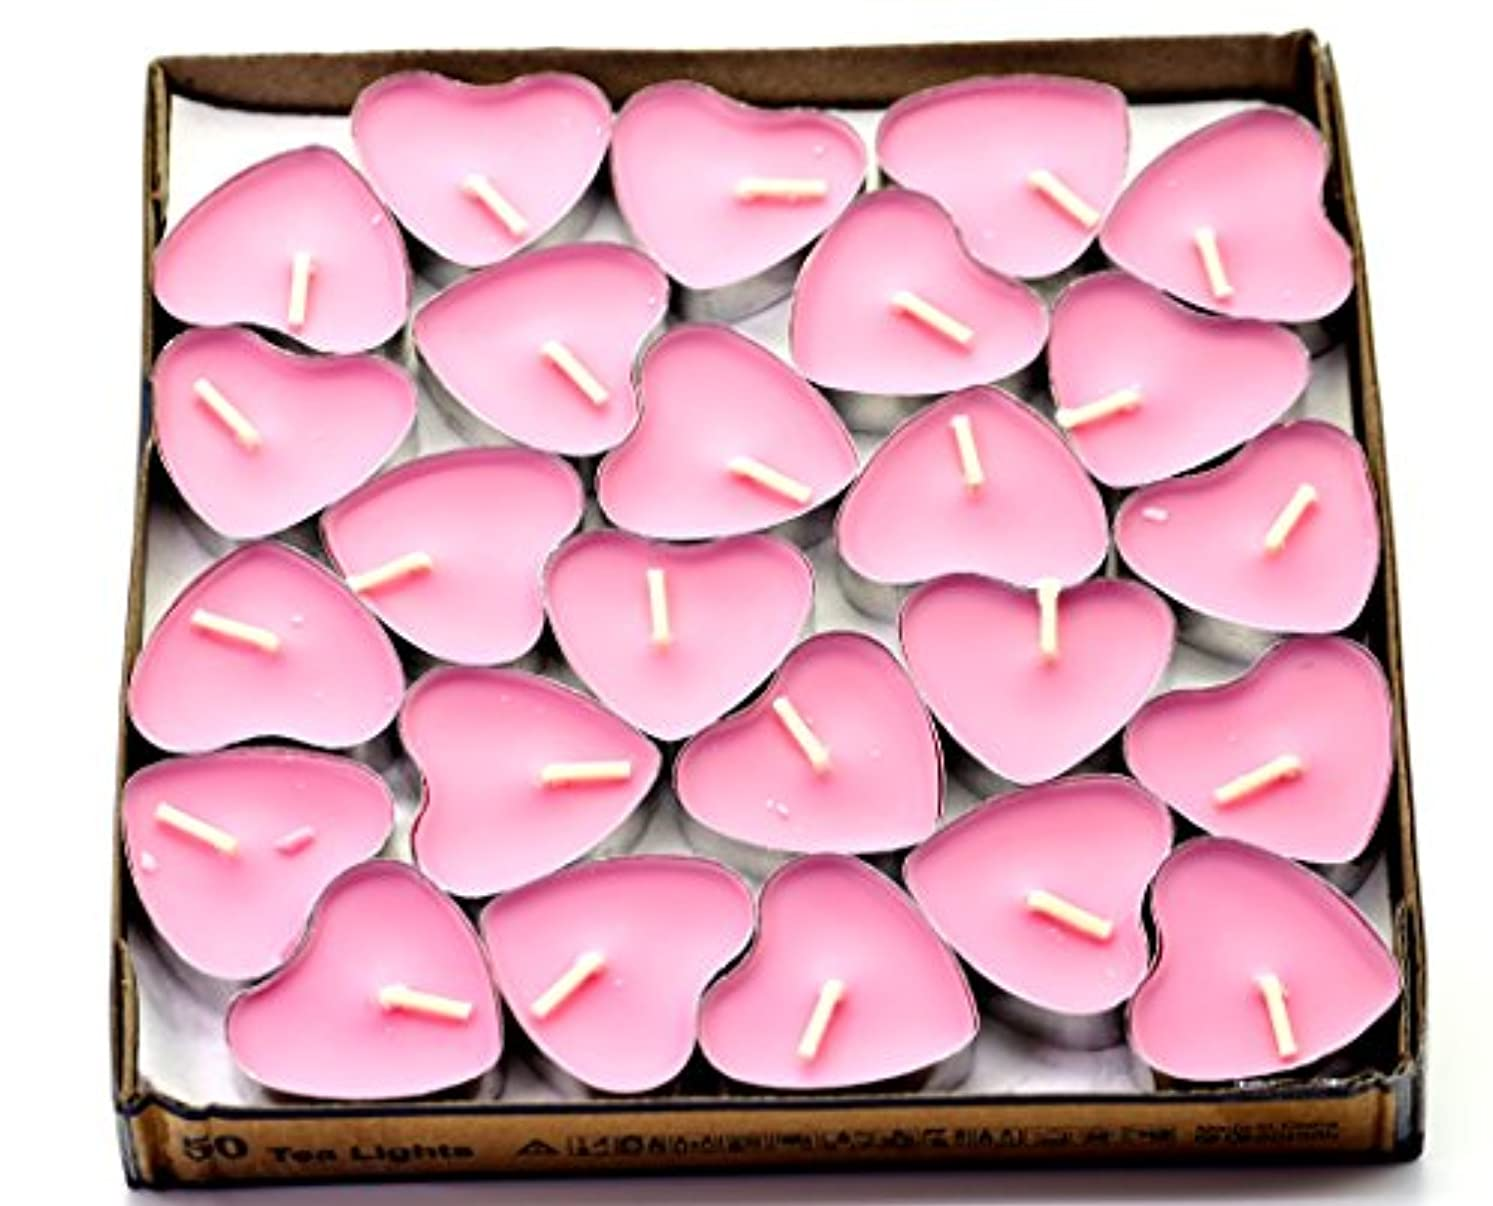 順応性のあるビーチ感覚(Pink(rose)) - Creationtop Scented Candles Tea Lights Mini Hearts Home Decor Aroma Candles Set of 50 pcs mini...